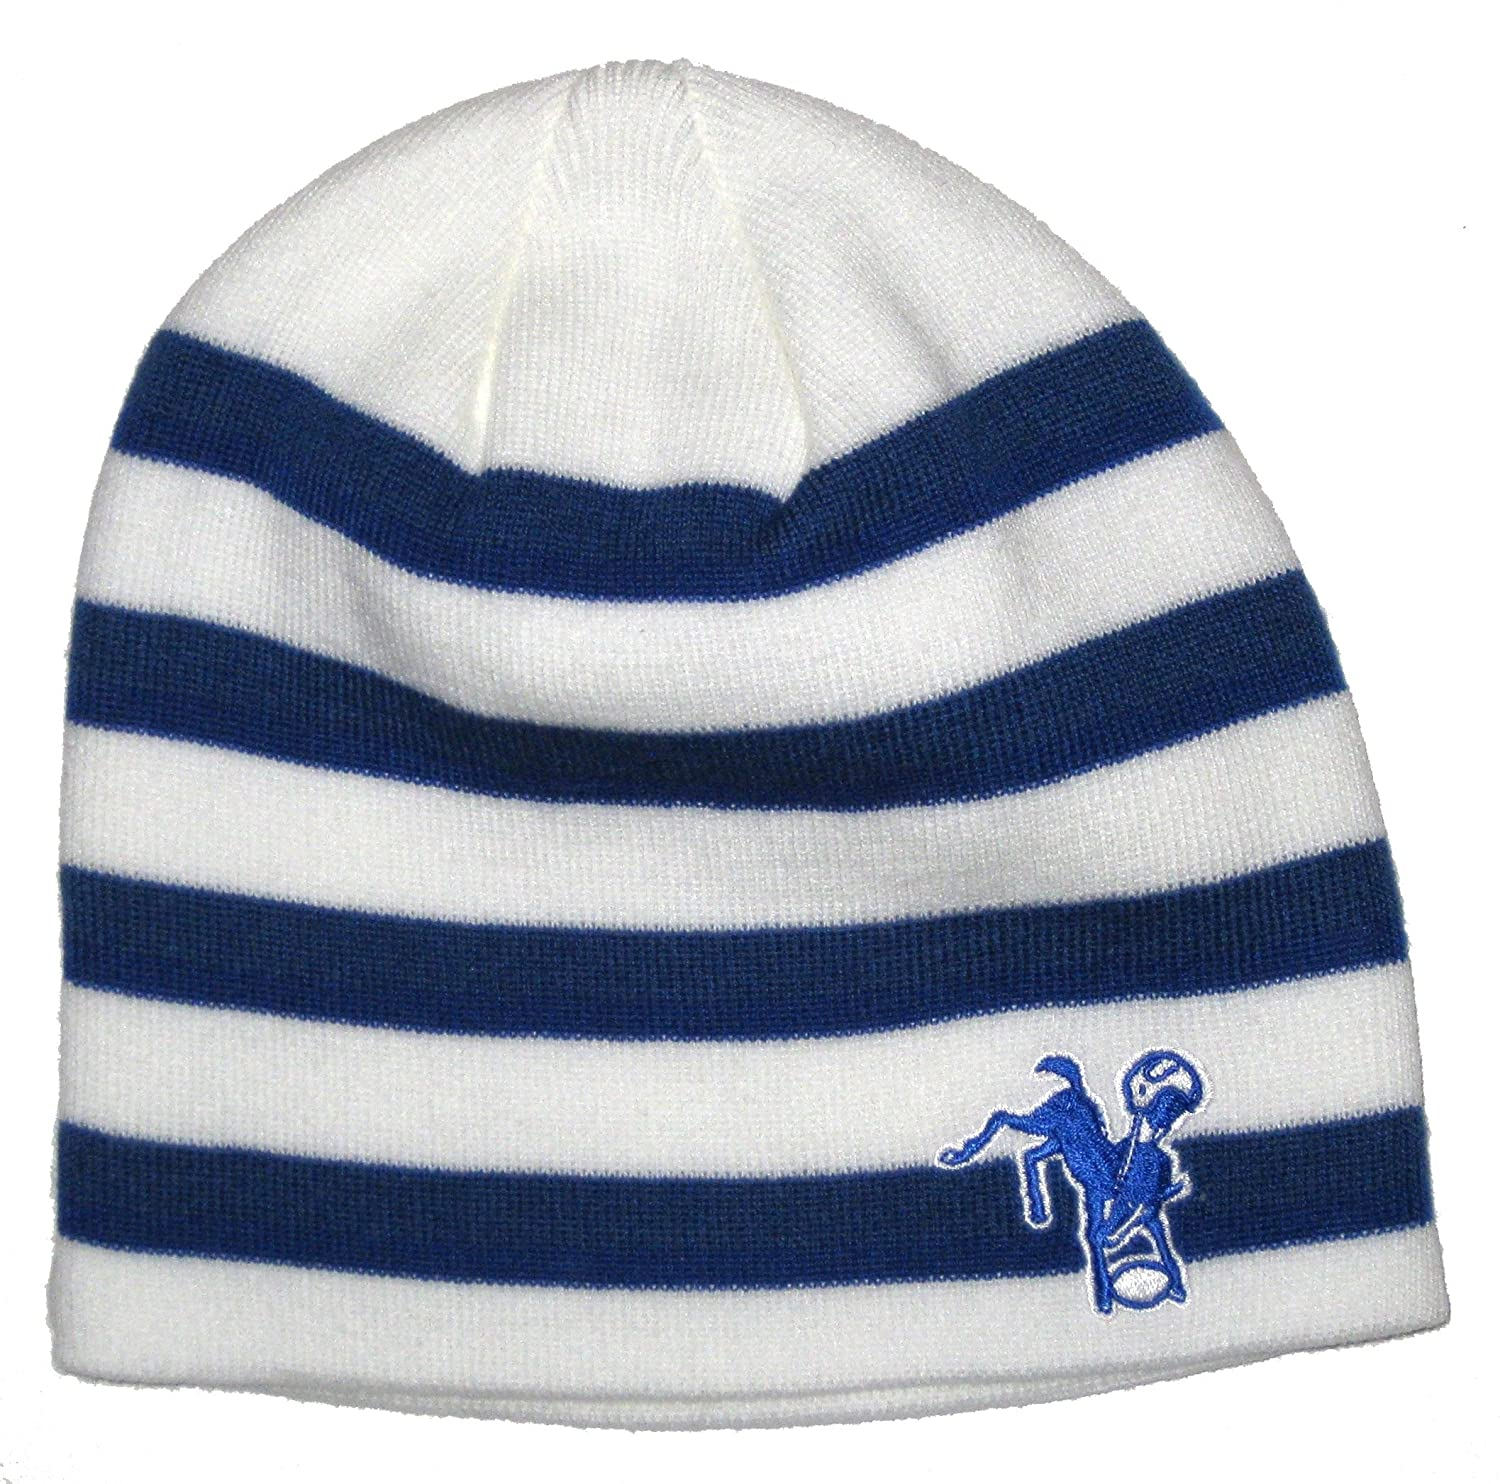 Indianapolis Colts NFL Reebok Team Apparel Vintage White Striped Team Colors Knit Beanie Hat colts car floor mat set of 2 nfl